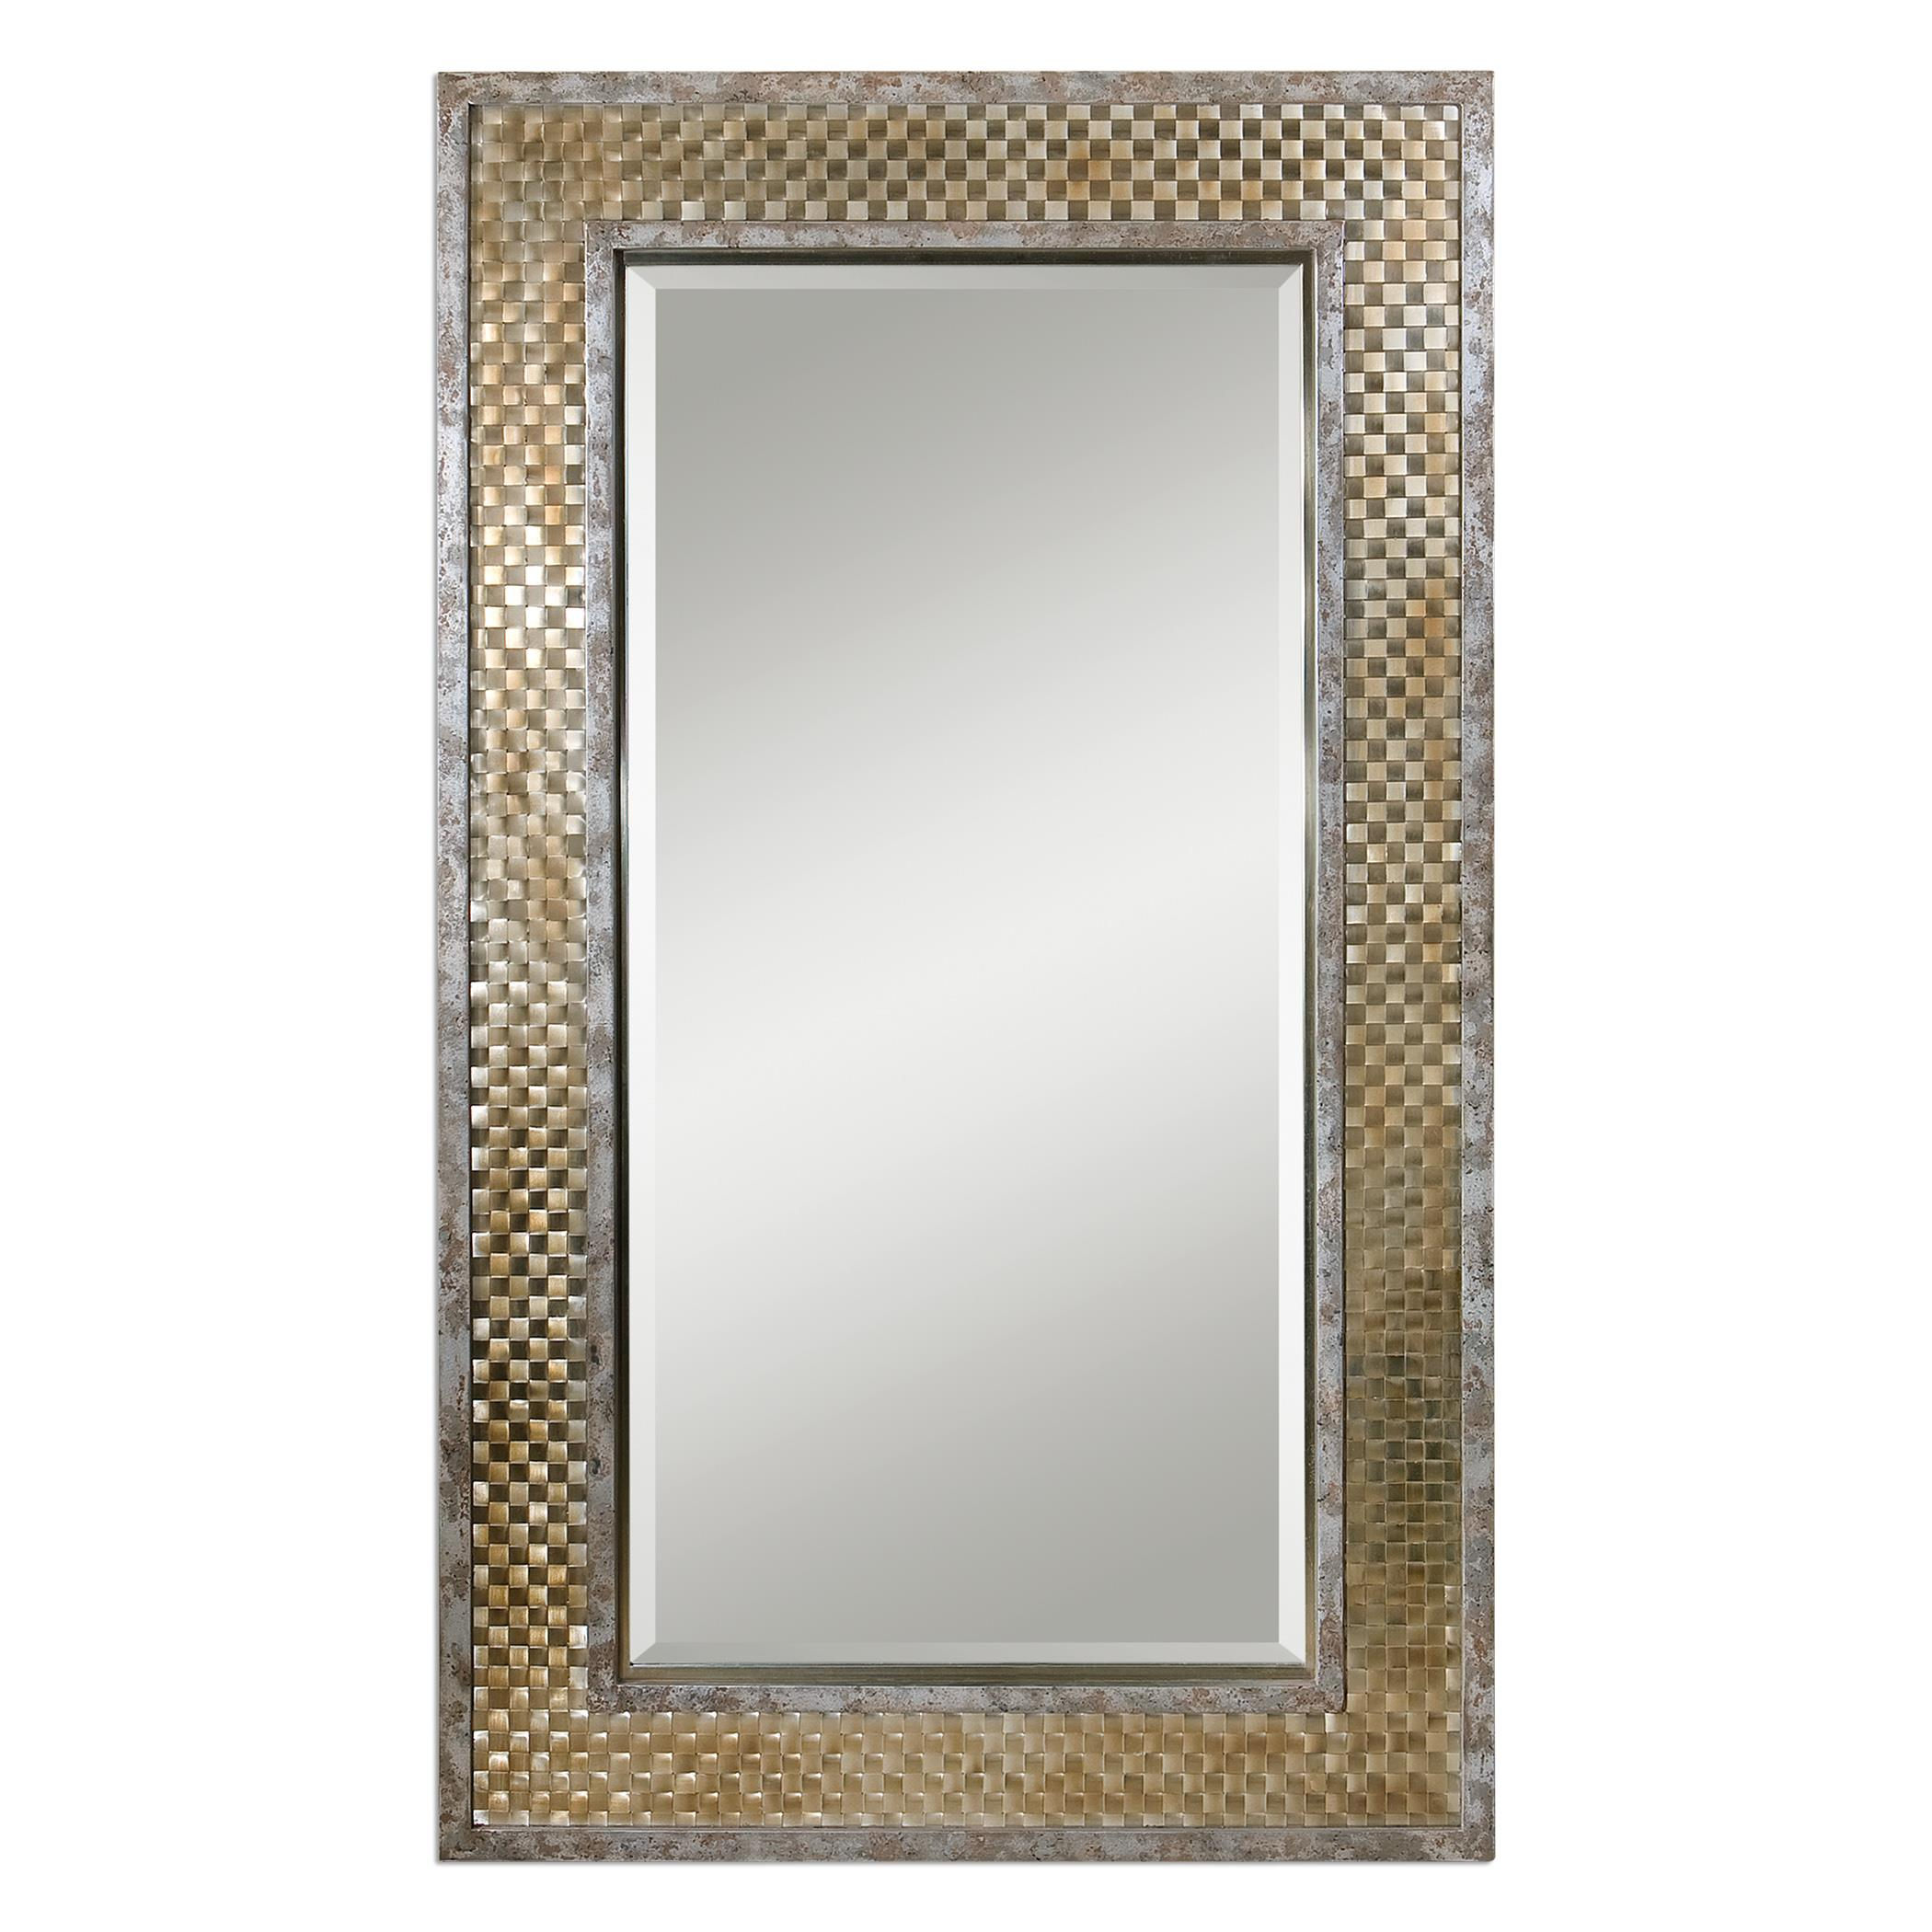 Uttermost Mirrors Mondego Woven Nickel Mirror - Item Number: 07698